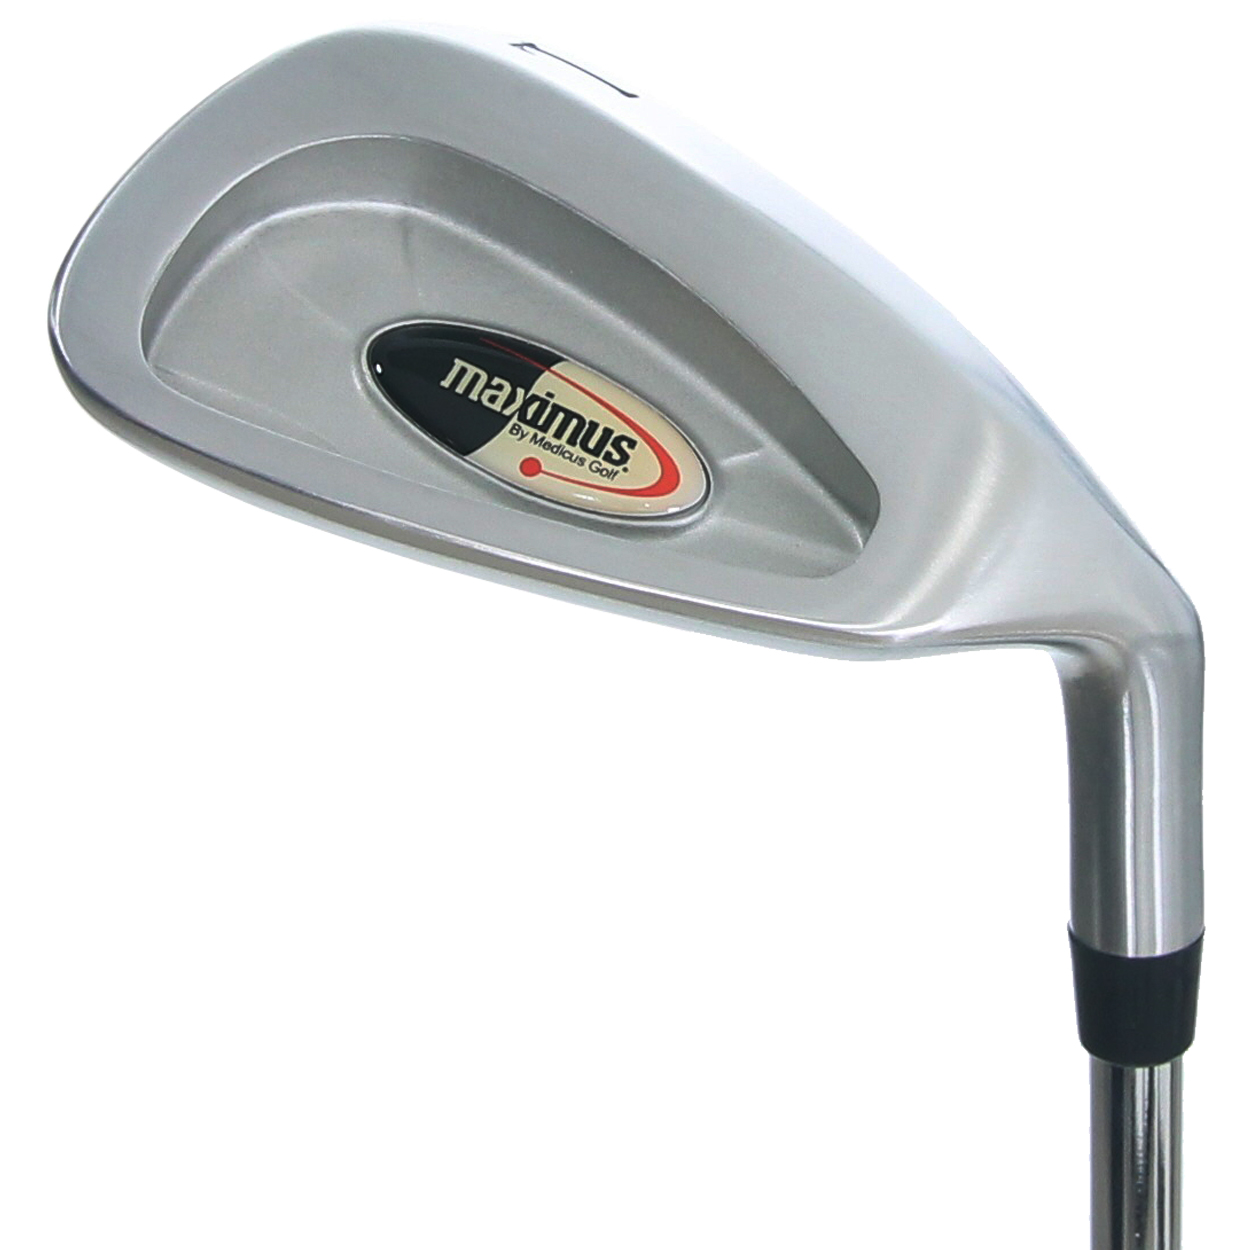 Medicus Golf Maximus Hittable Weighted Lob Wedge Swing Tr...